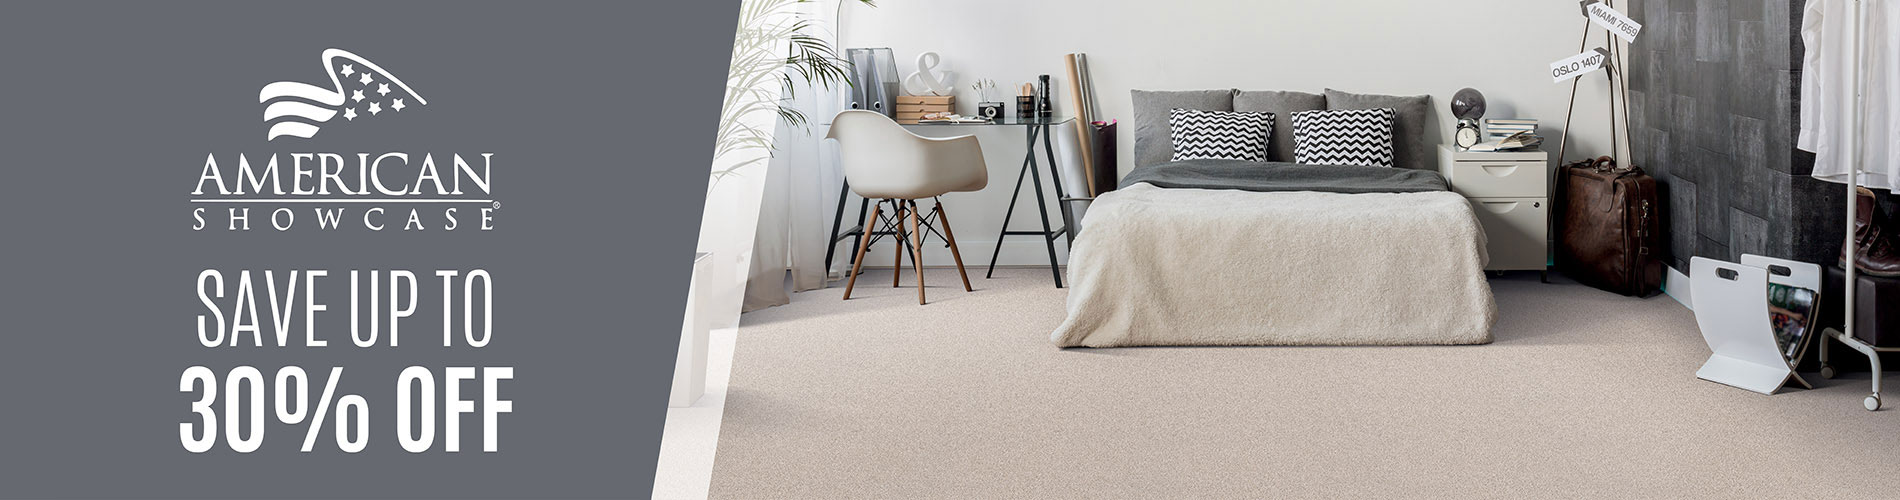 Save up to 30% off on American Showcase at Flooring USA Abbey